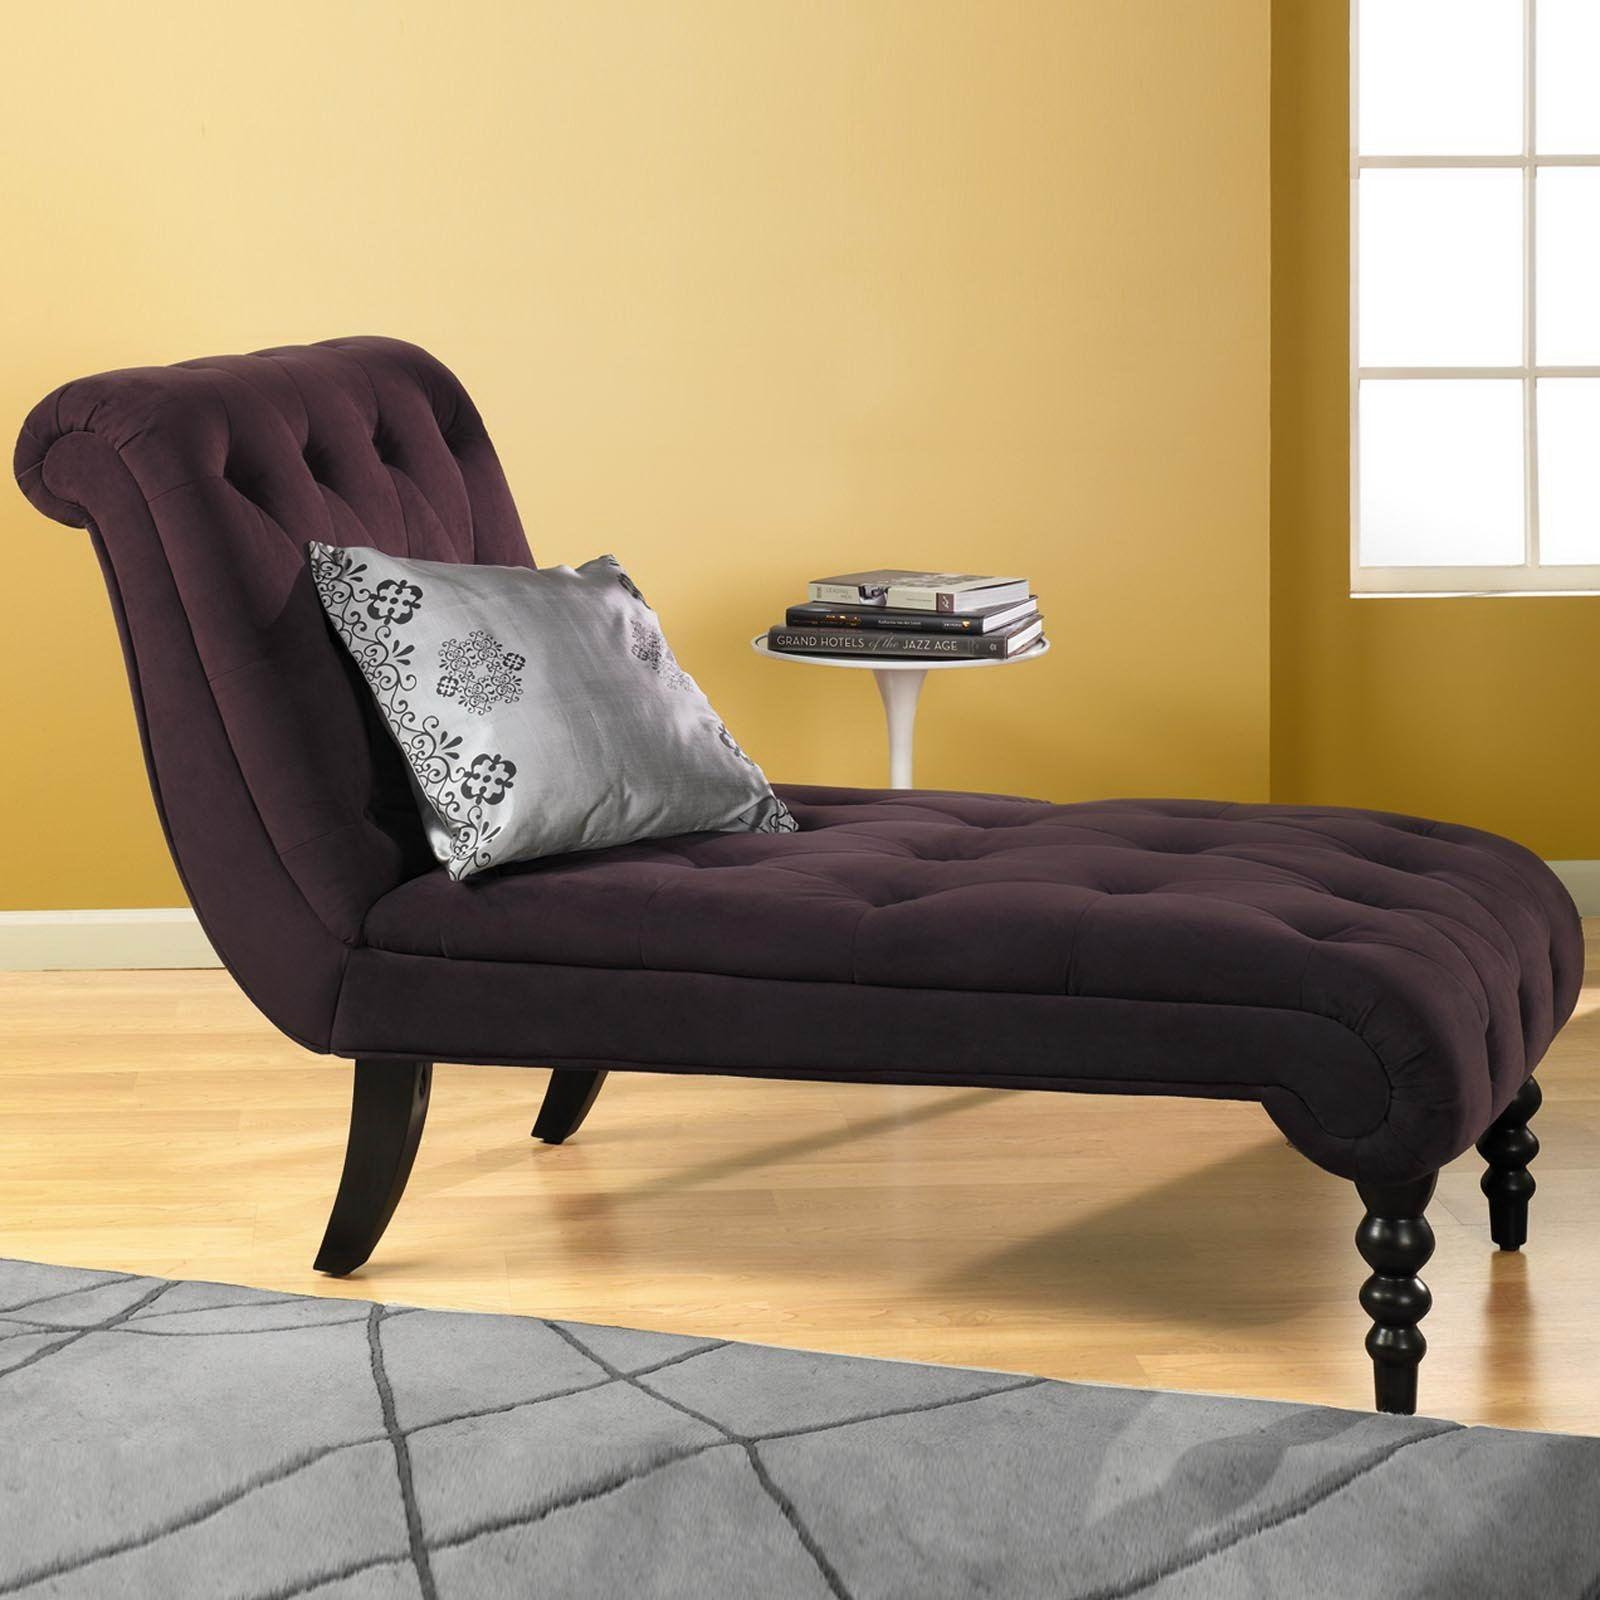 20 collection of chaise sofa chairs sofa ideas for Affordable chaise sofas